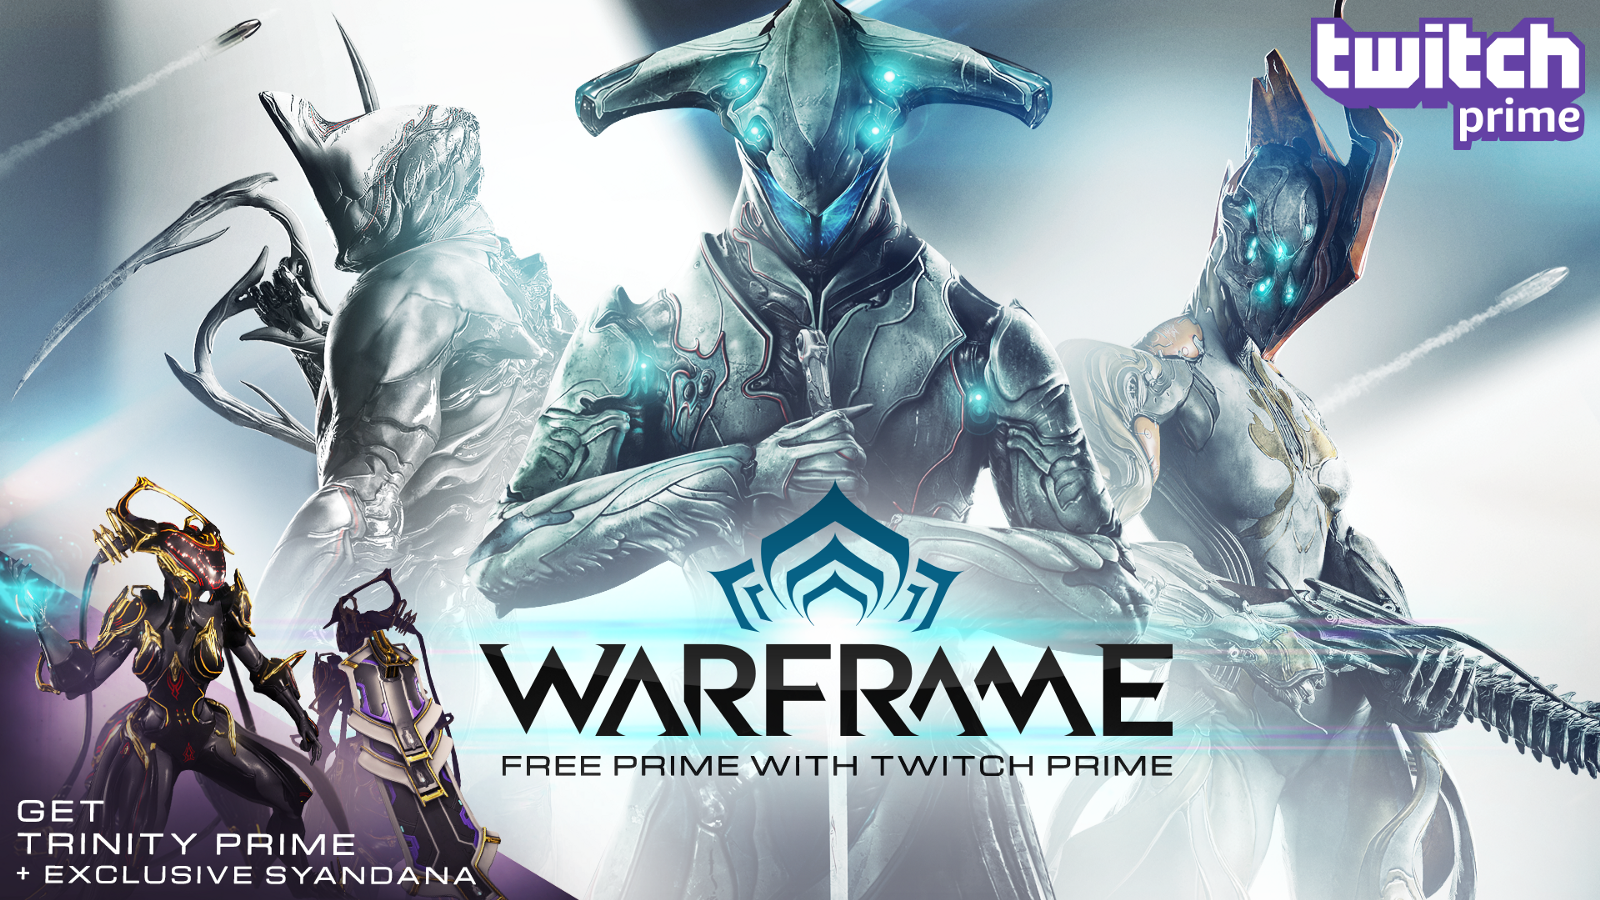 twitch prime members  get trinity prime and exclusive